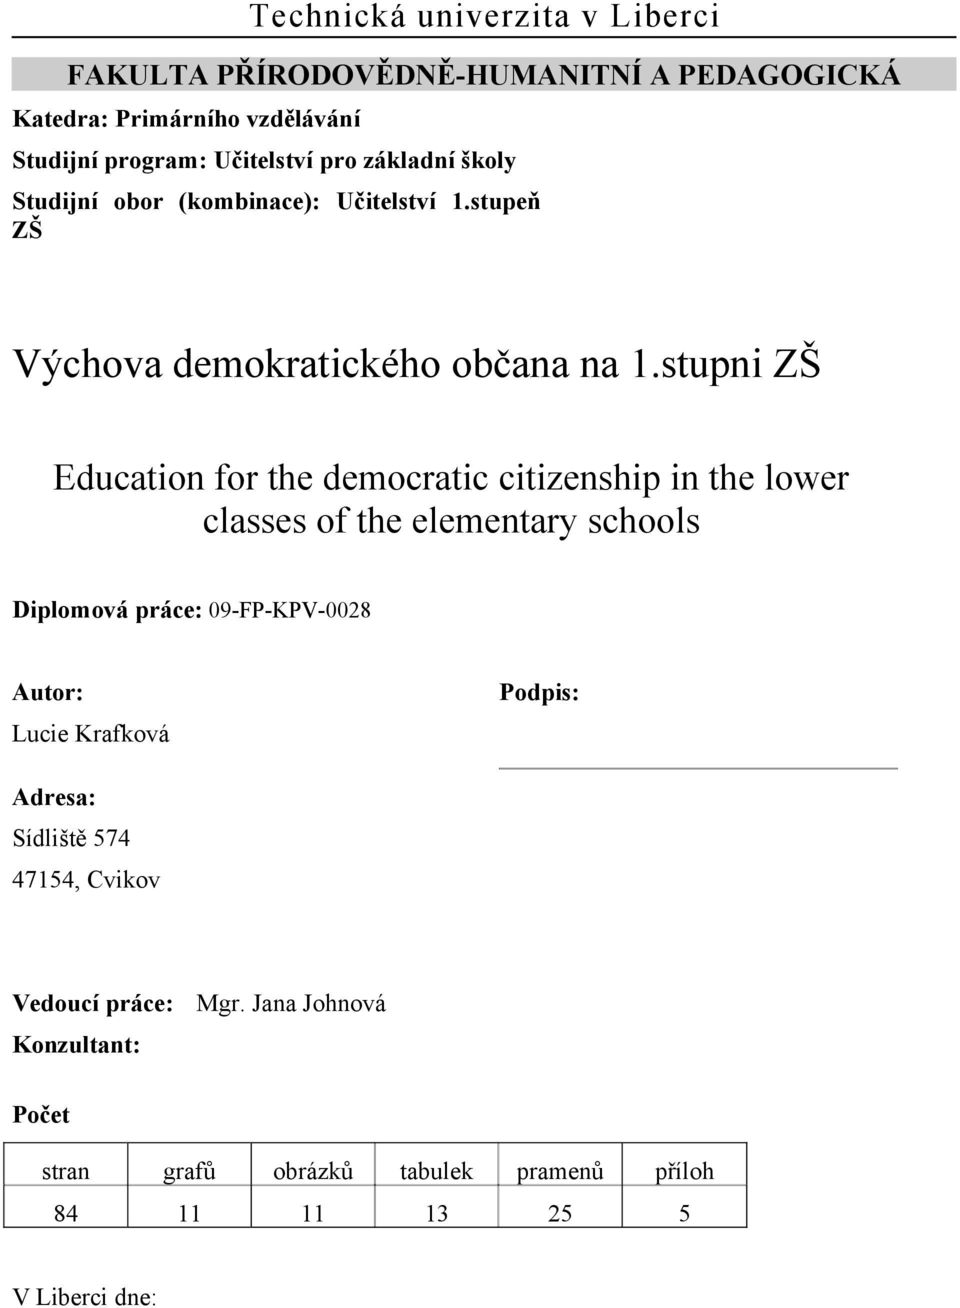 stupni ZŠ Education for the democratic citizenship in the lower classes of the elementary schools Diplomová práce: 09-FP-KPV-0028 Autor: